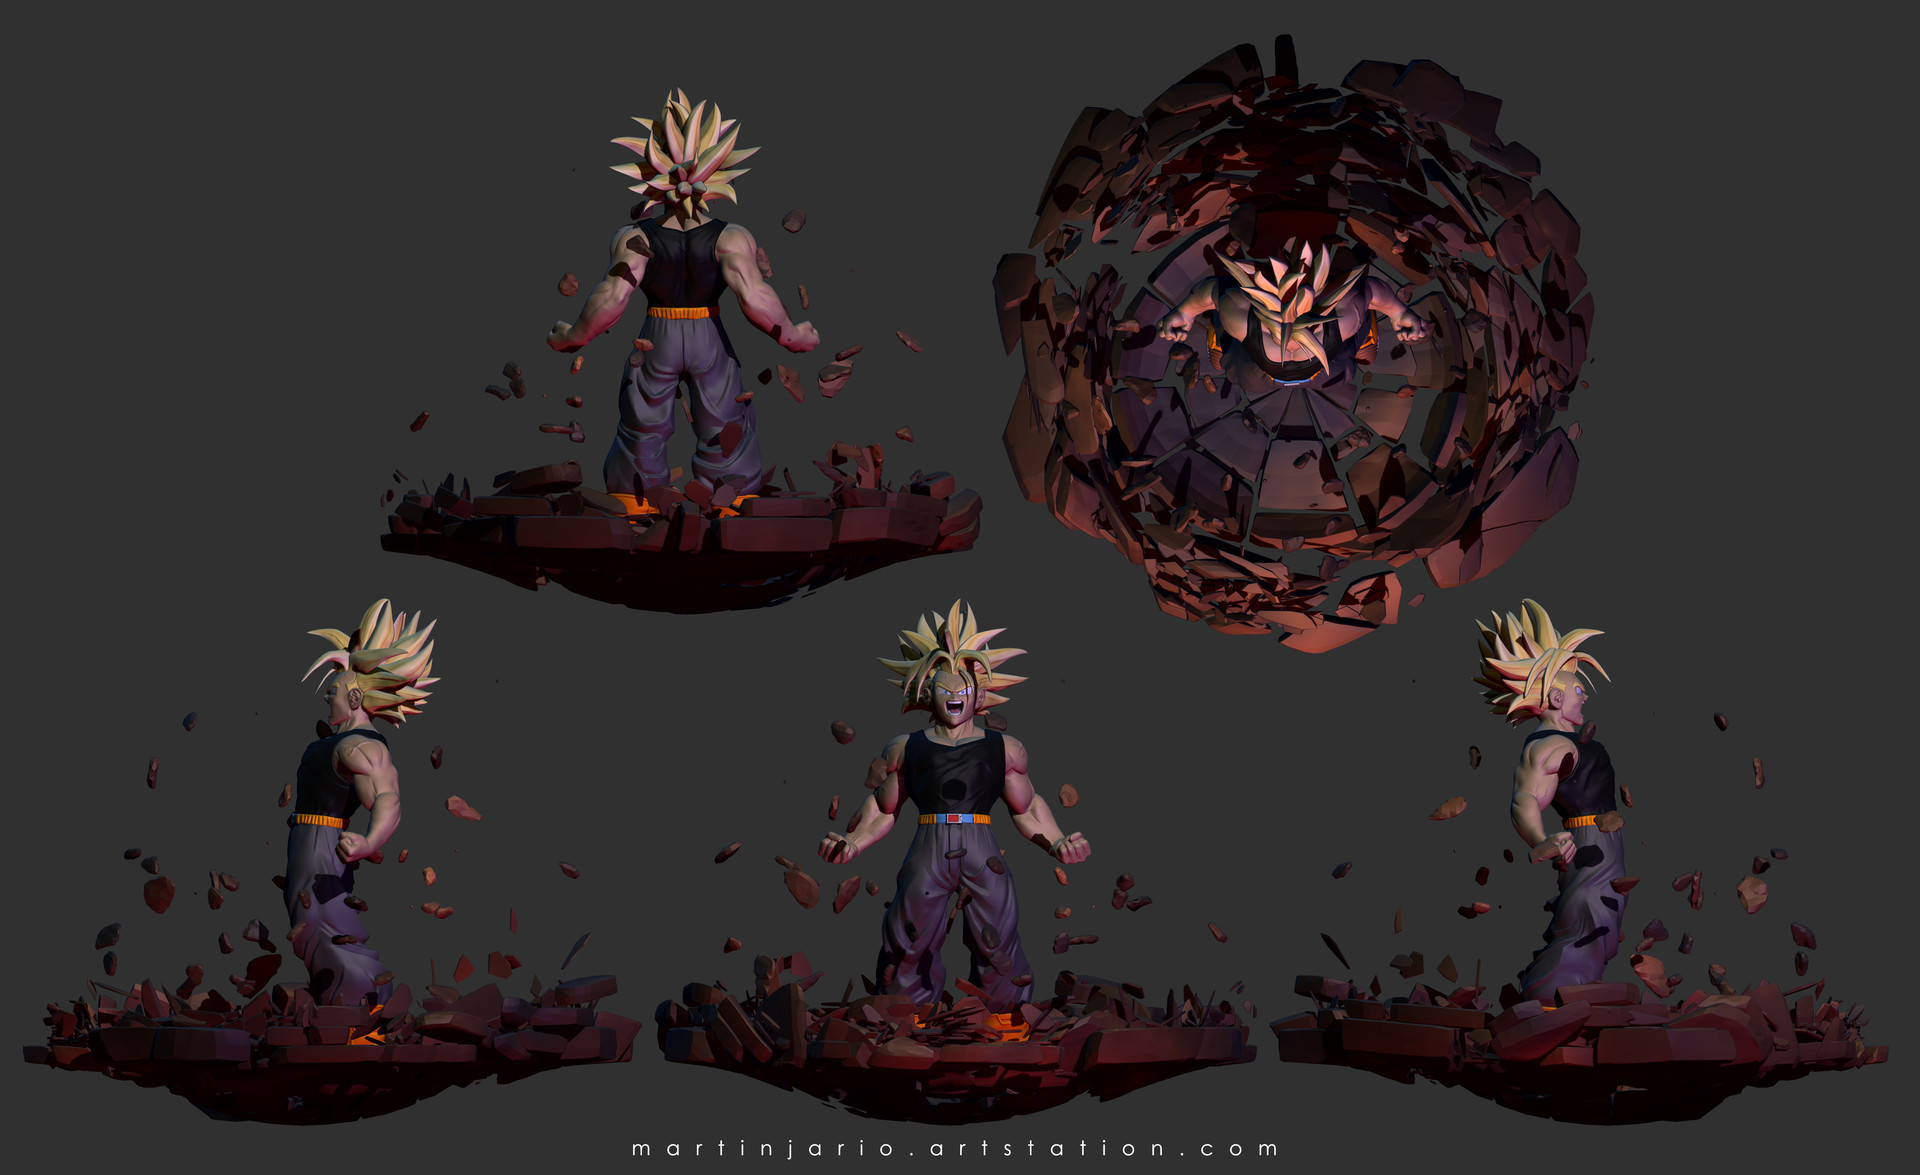 Martin jario martinjario trunks artstation render views